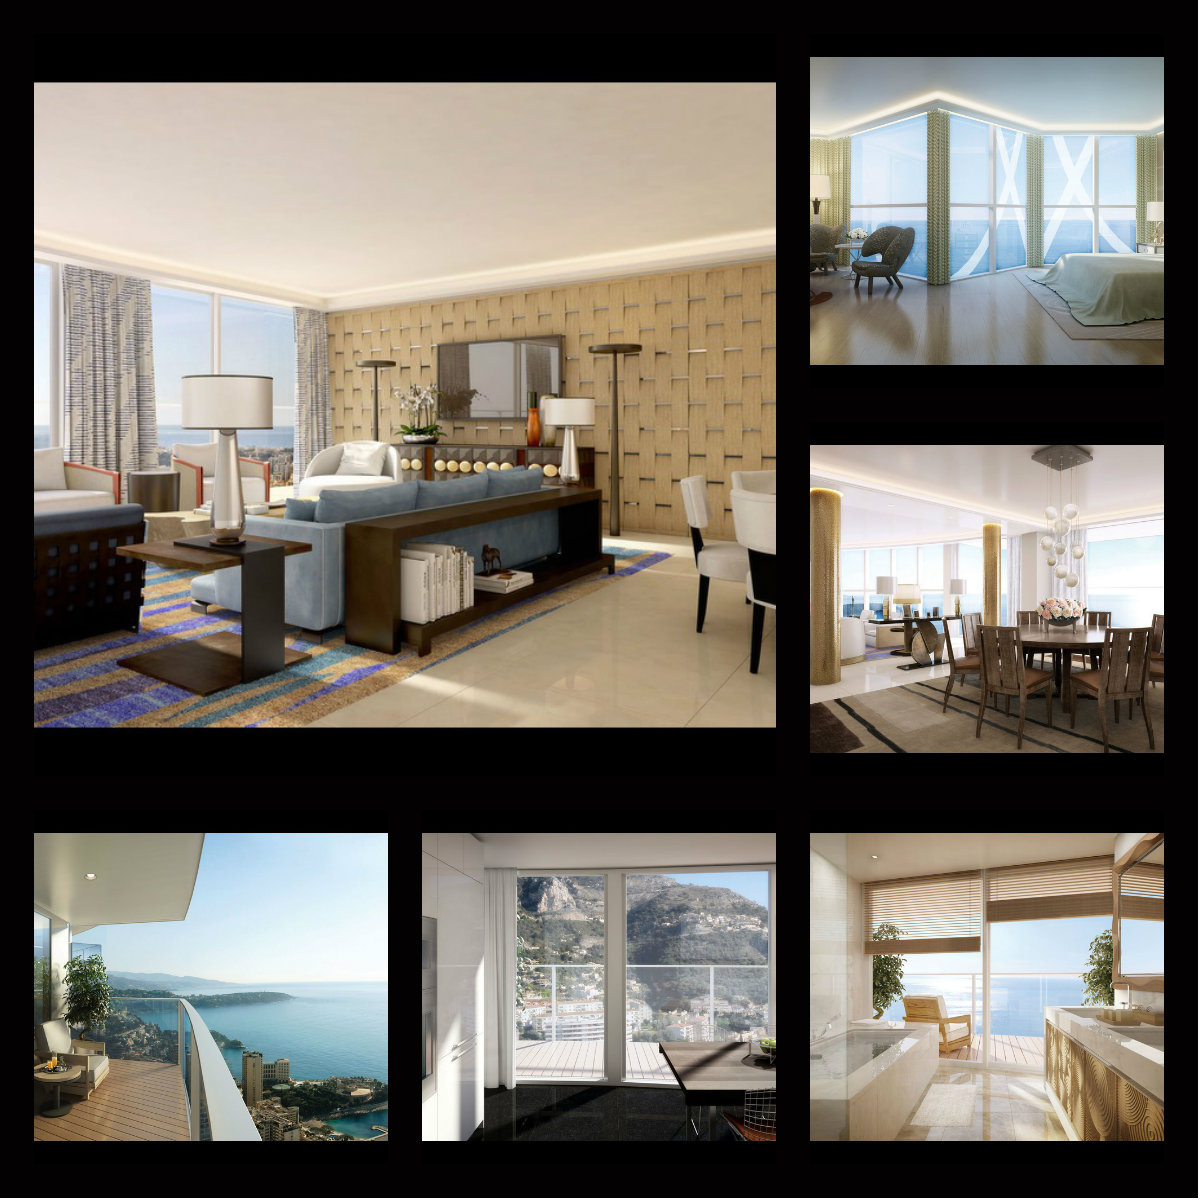 monaco l 39 appartement le plus cher du monde 300 millions d 39 euros. Black Bedroom Furniture Sets. Home Design Ideas